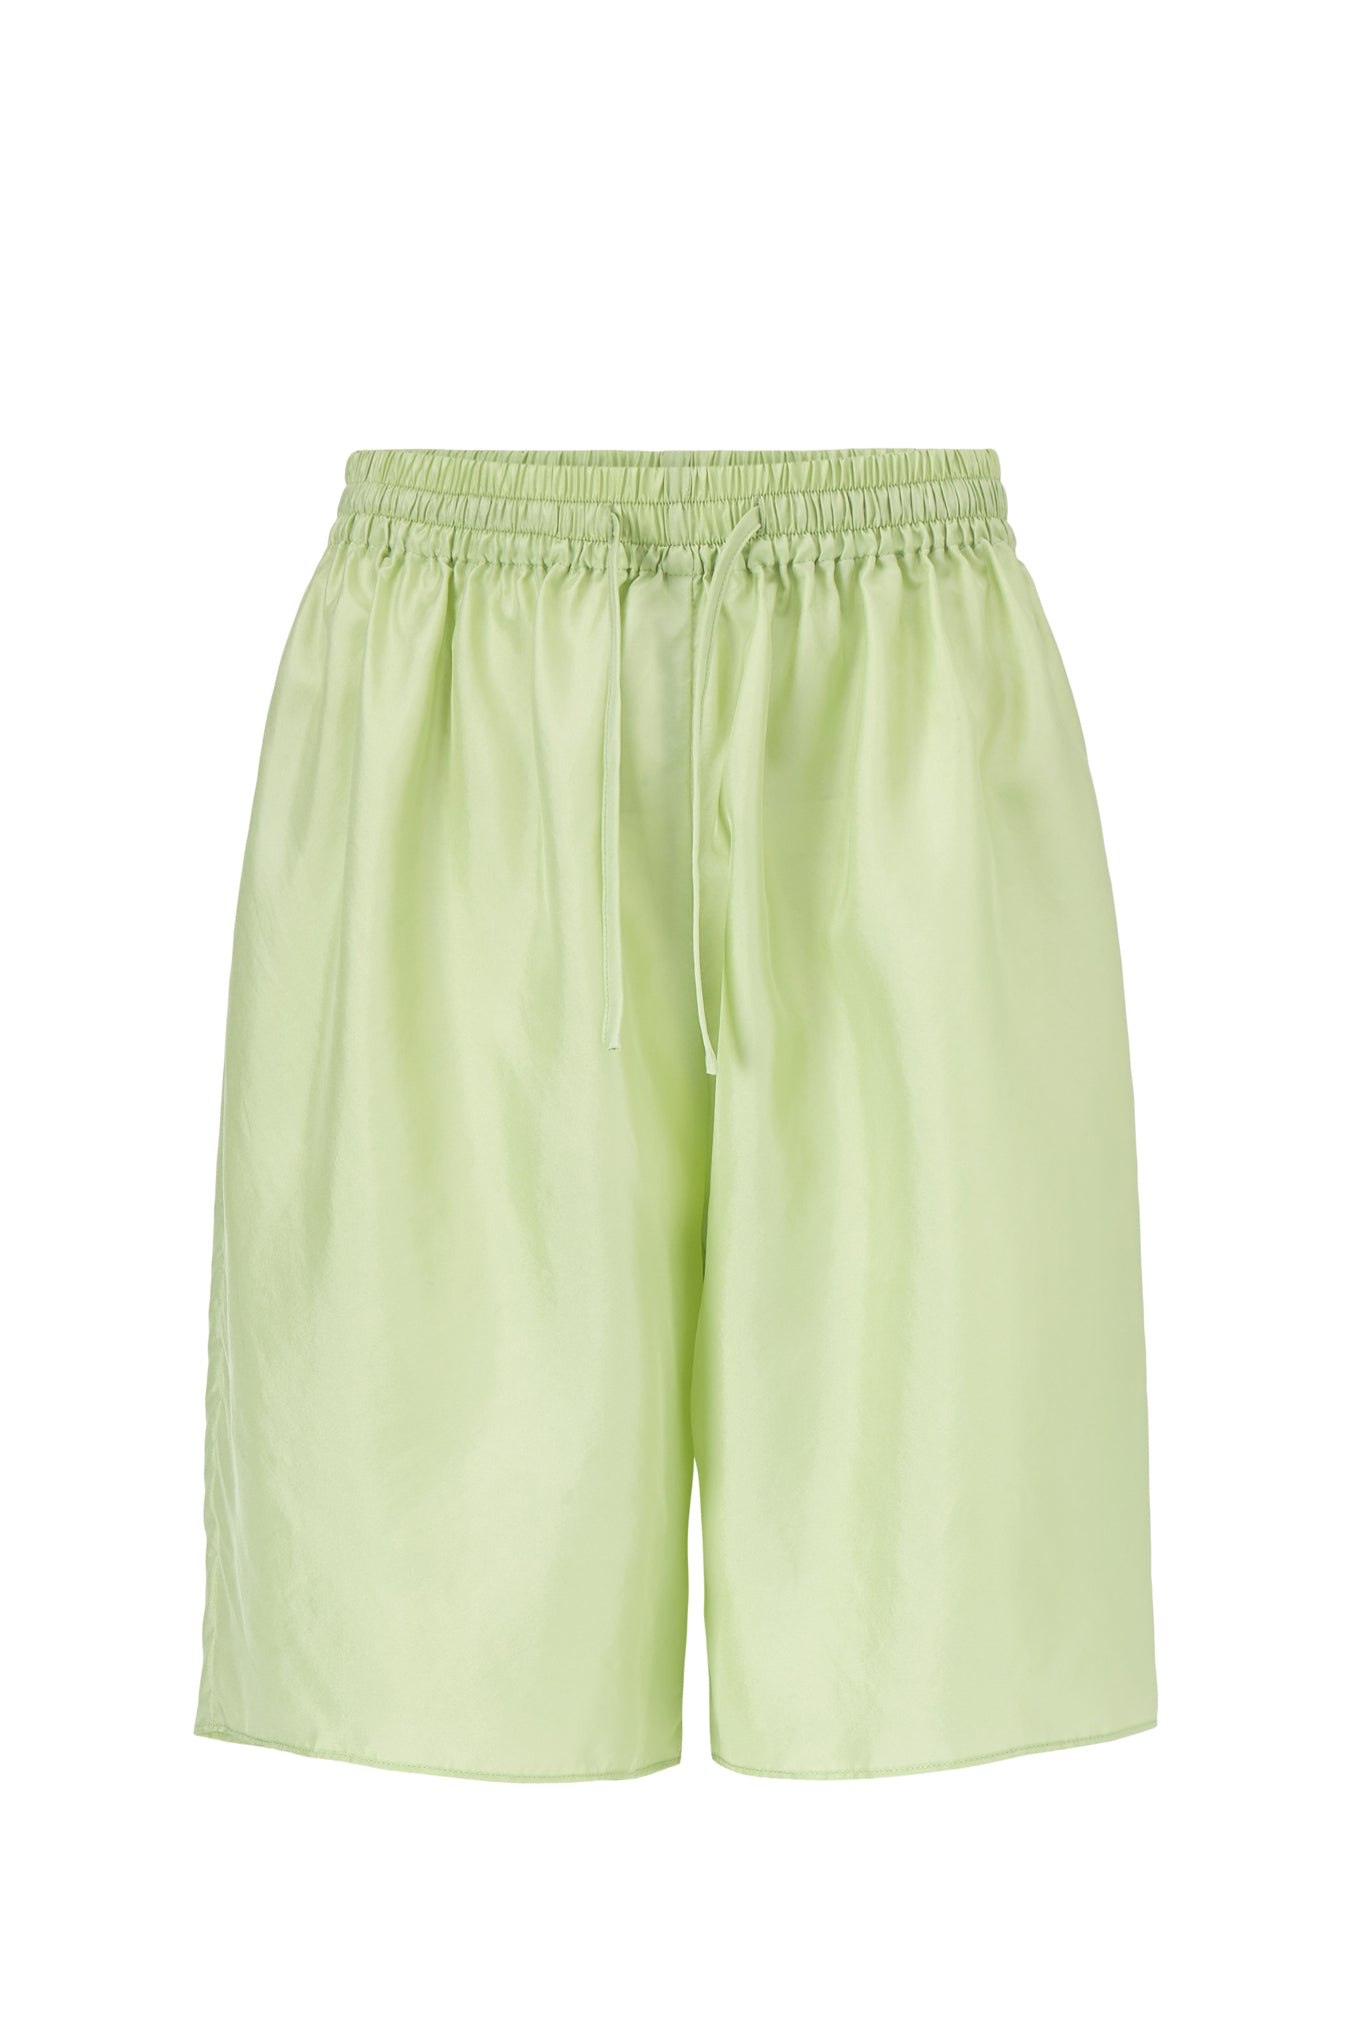 BEA SHORTS - LIME